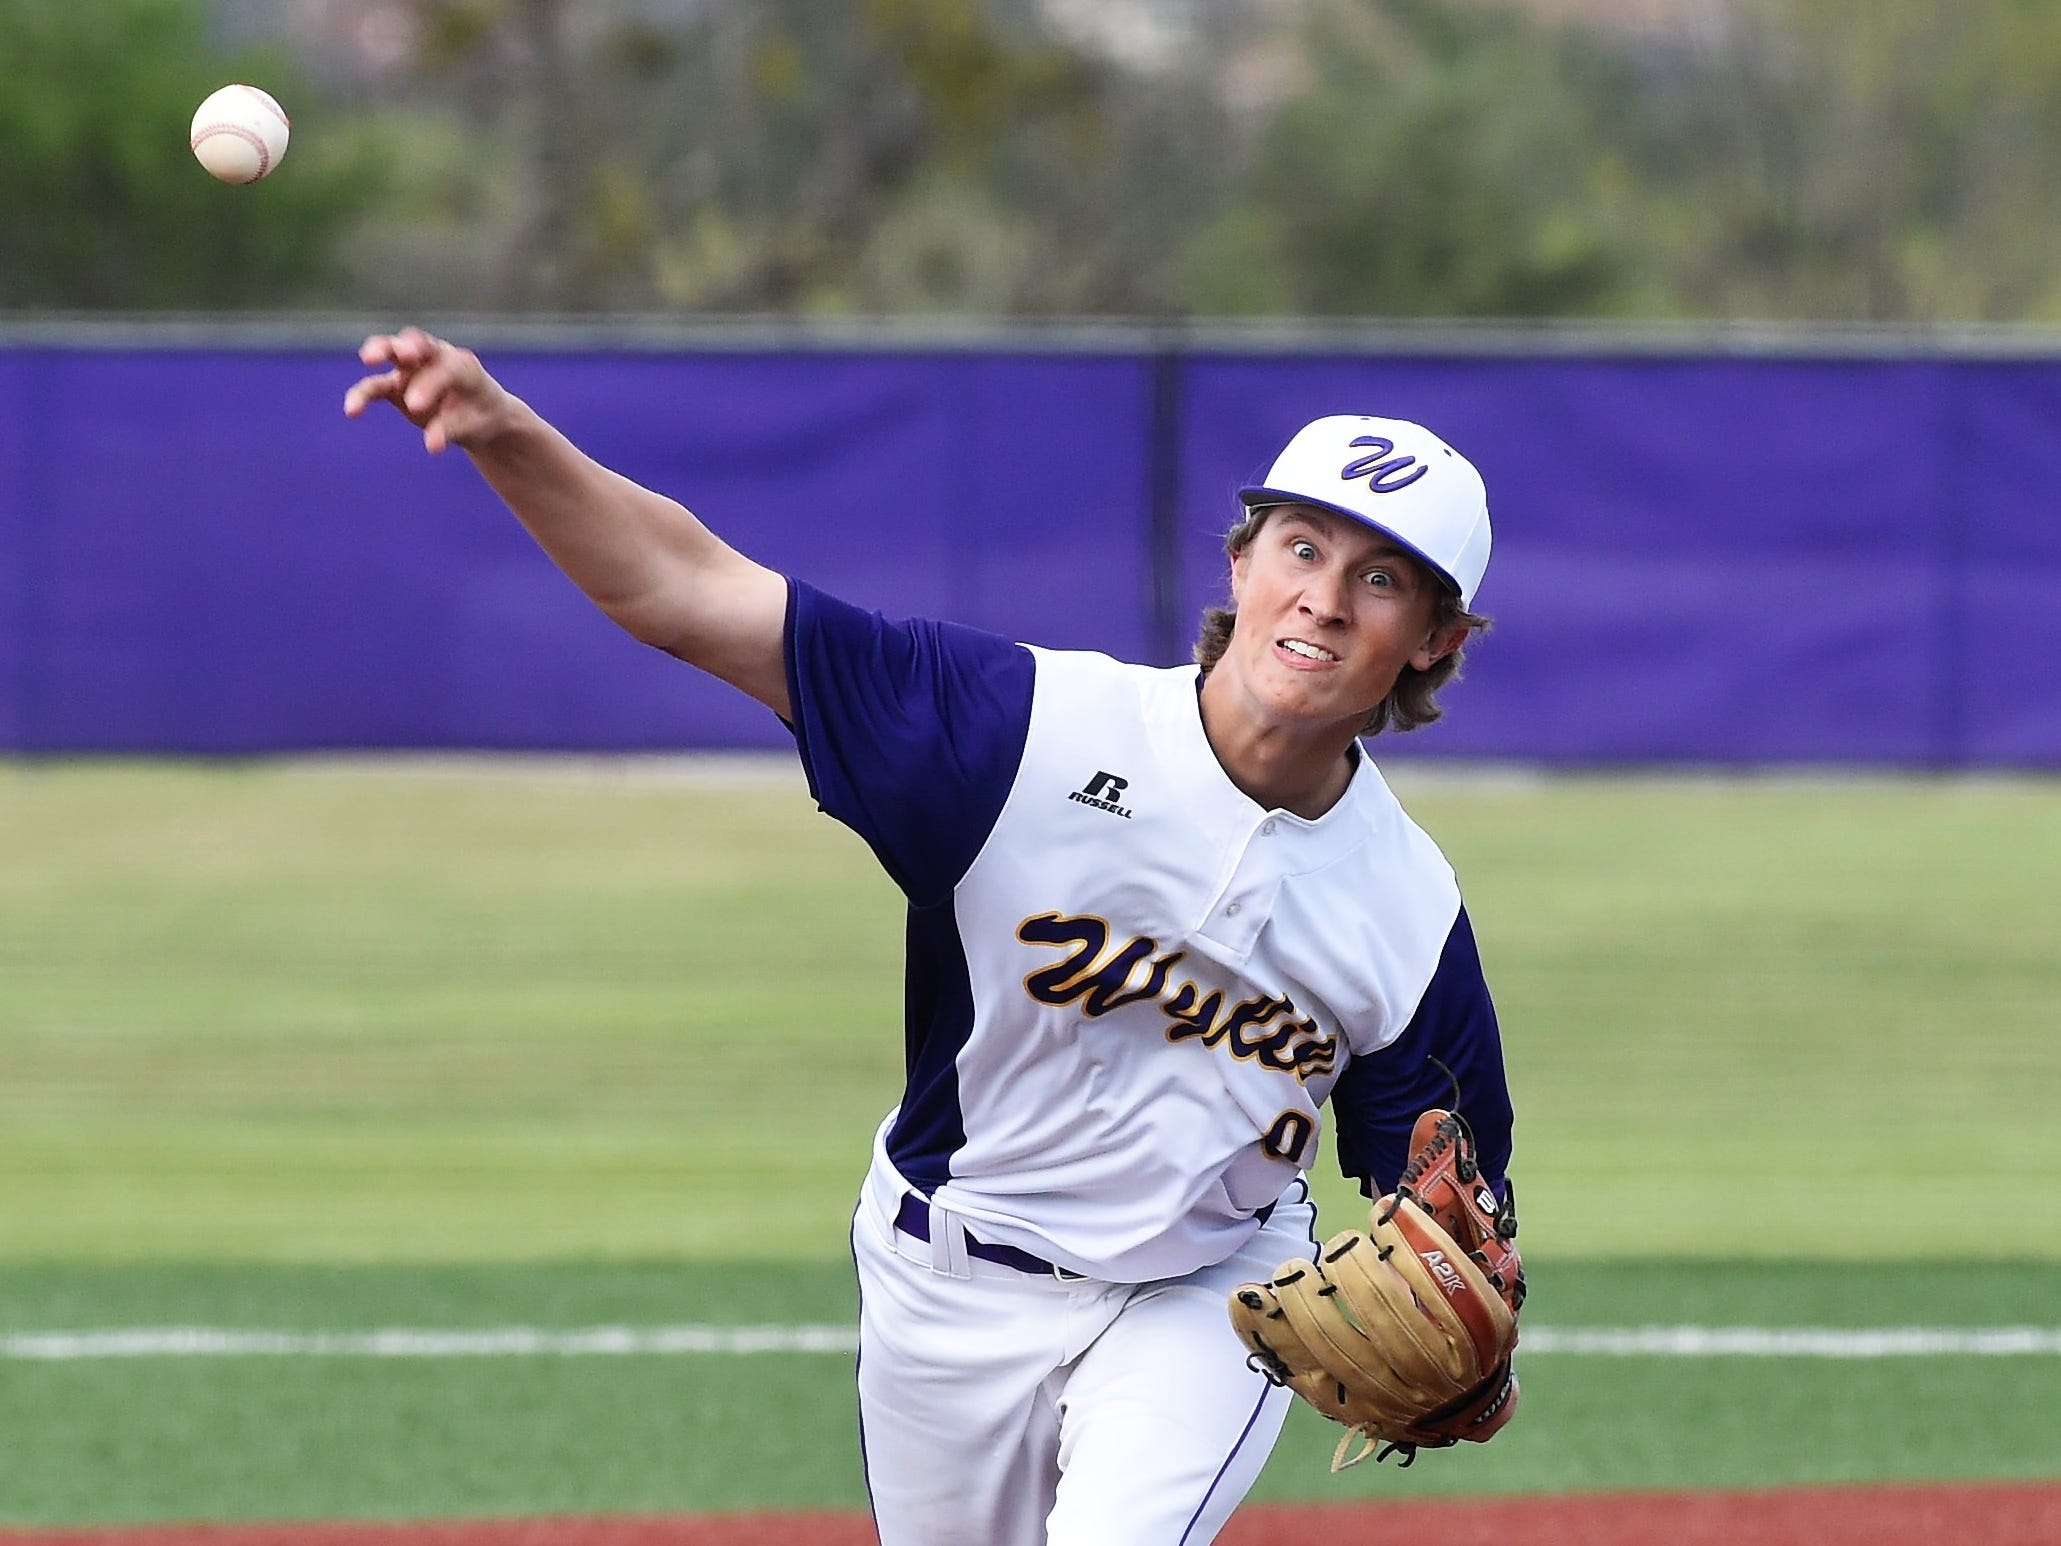 Wylie pitcher Brooks Gay (9) lets go of the ball against Cooper at Bulldog Field on Friday, April 12, 2019. Gay earned the win, giving up one unearned run in six innings on two hits with three strikeouts as the Bulldogs won 4-3.